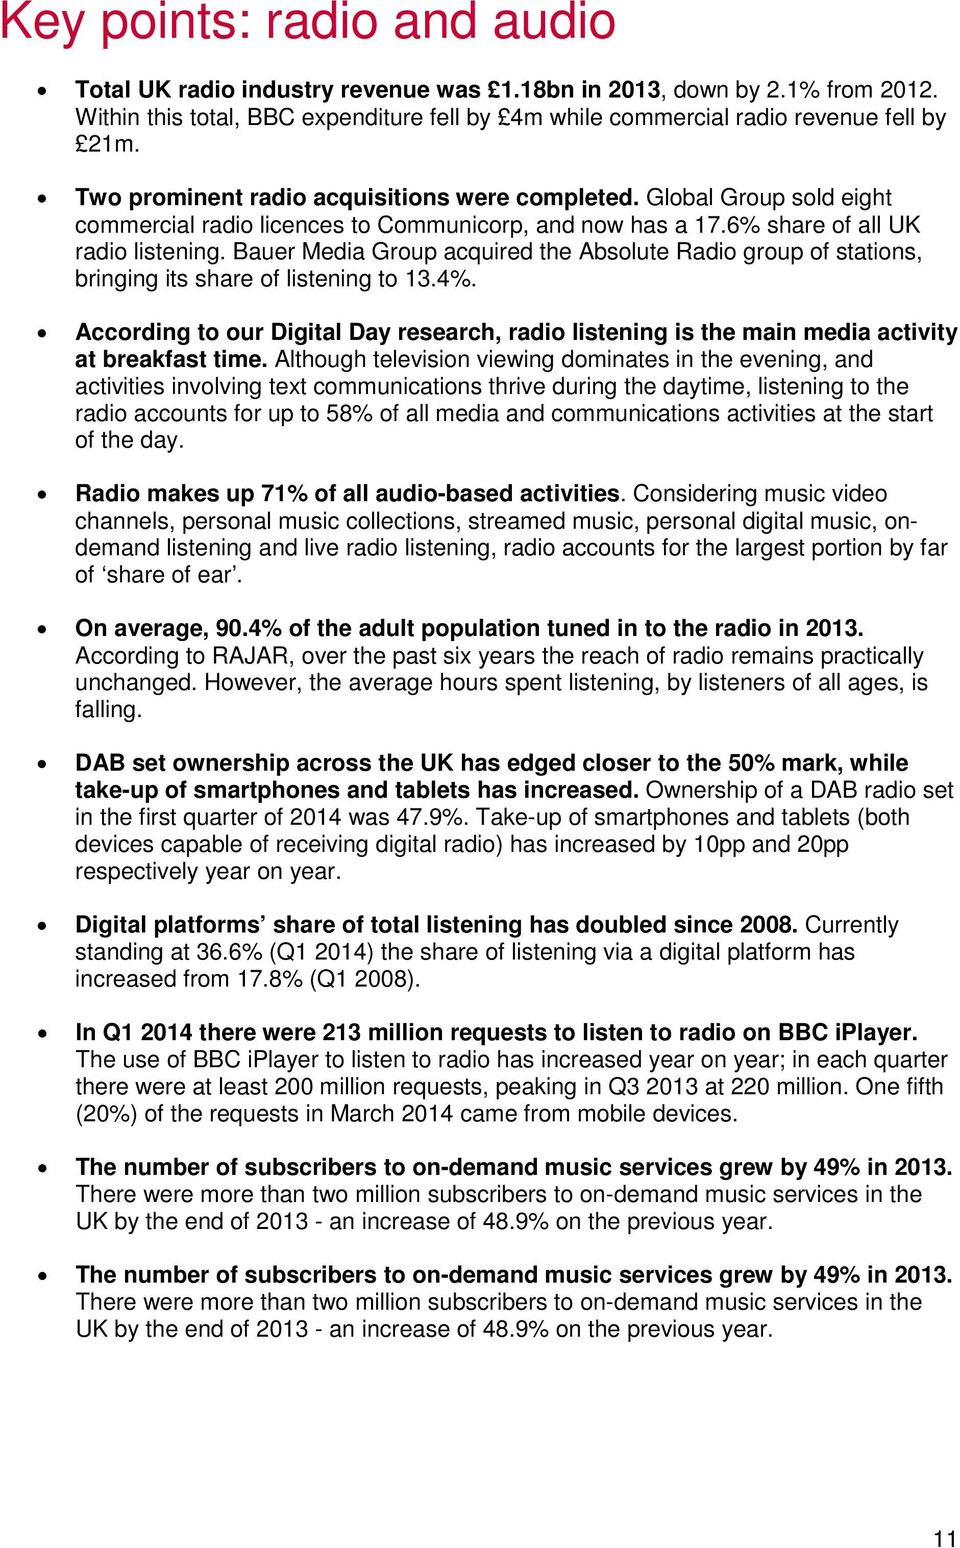 Bauer Media Group acquired the Absolute Radio group of stations, bringing its share of listening to 13.4%.